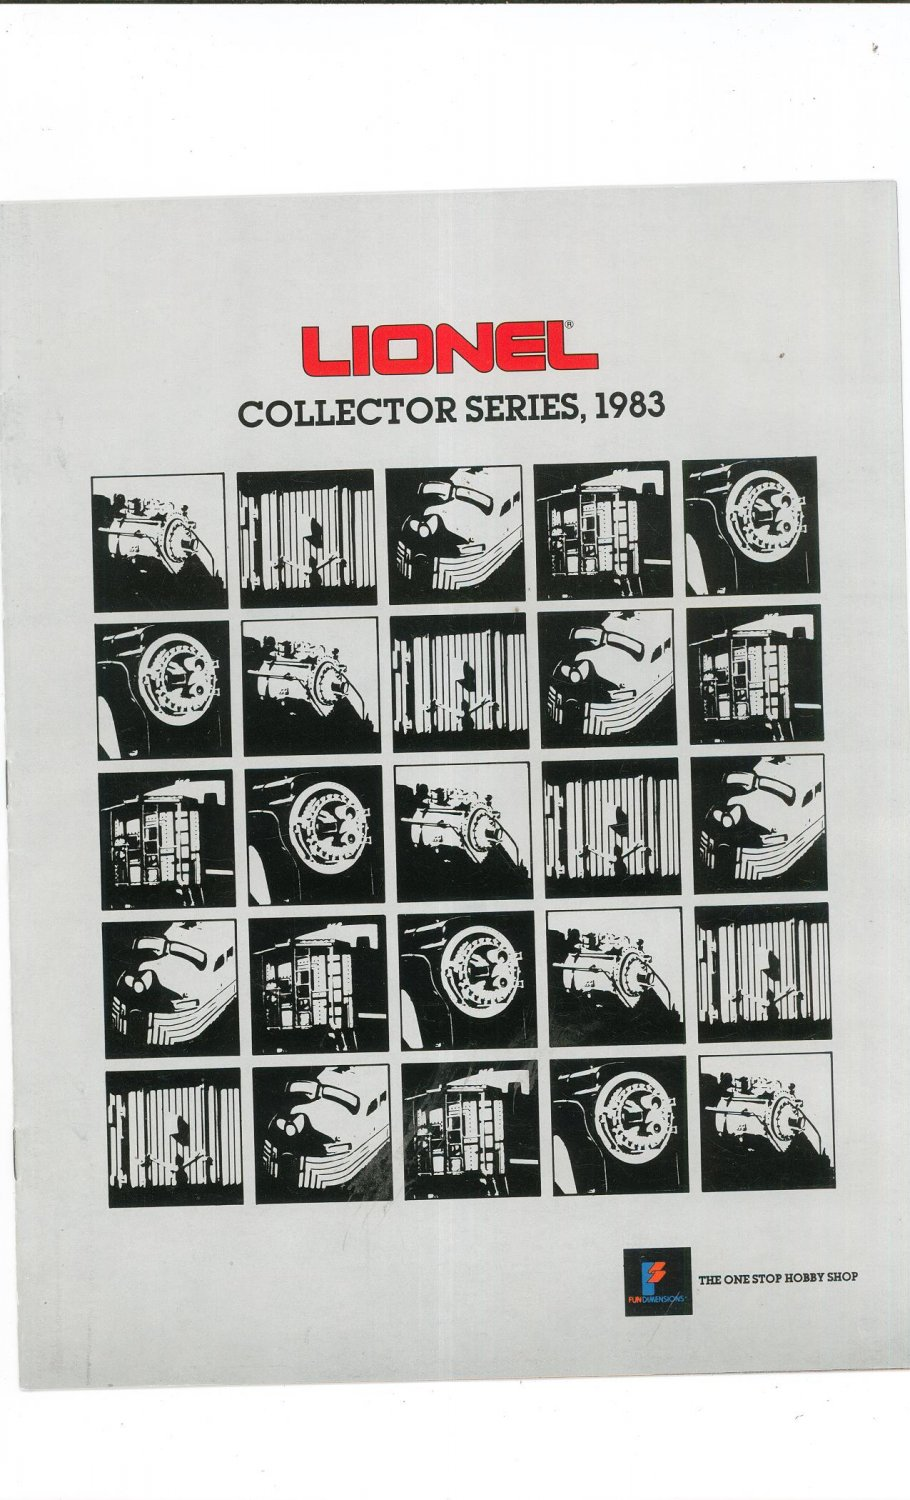 Vintage Lionel Collector Series Trains Catalog 1983 Not PDF Free Shipping Offer